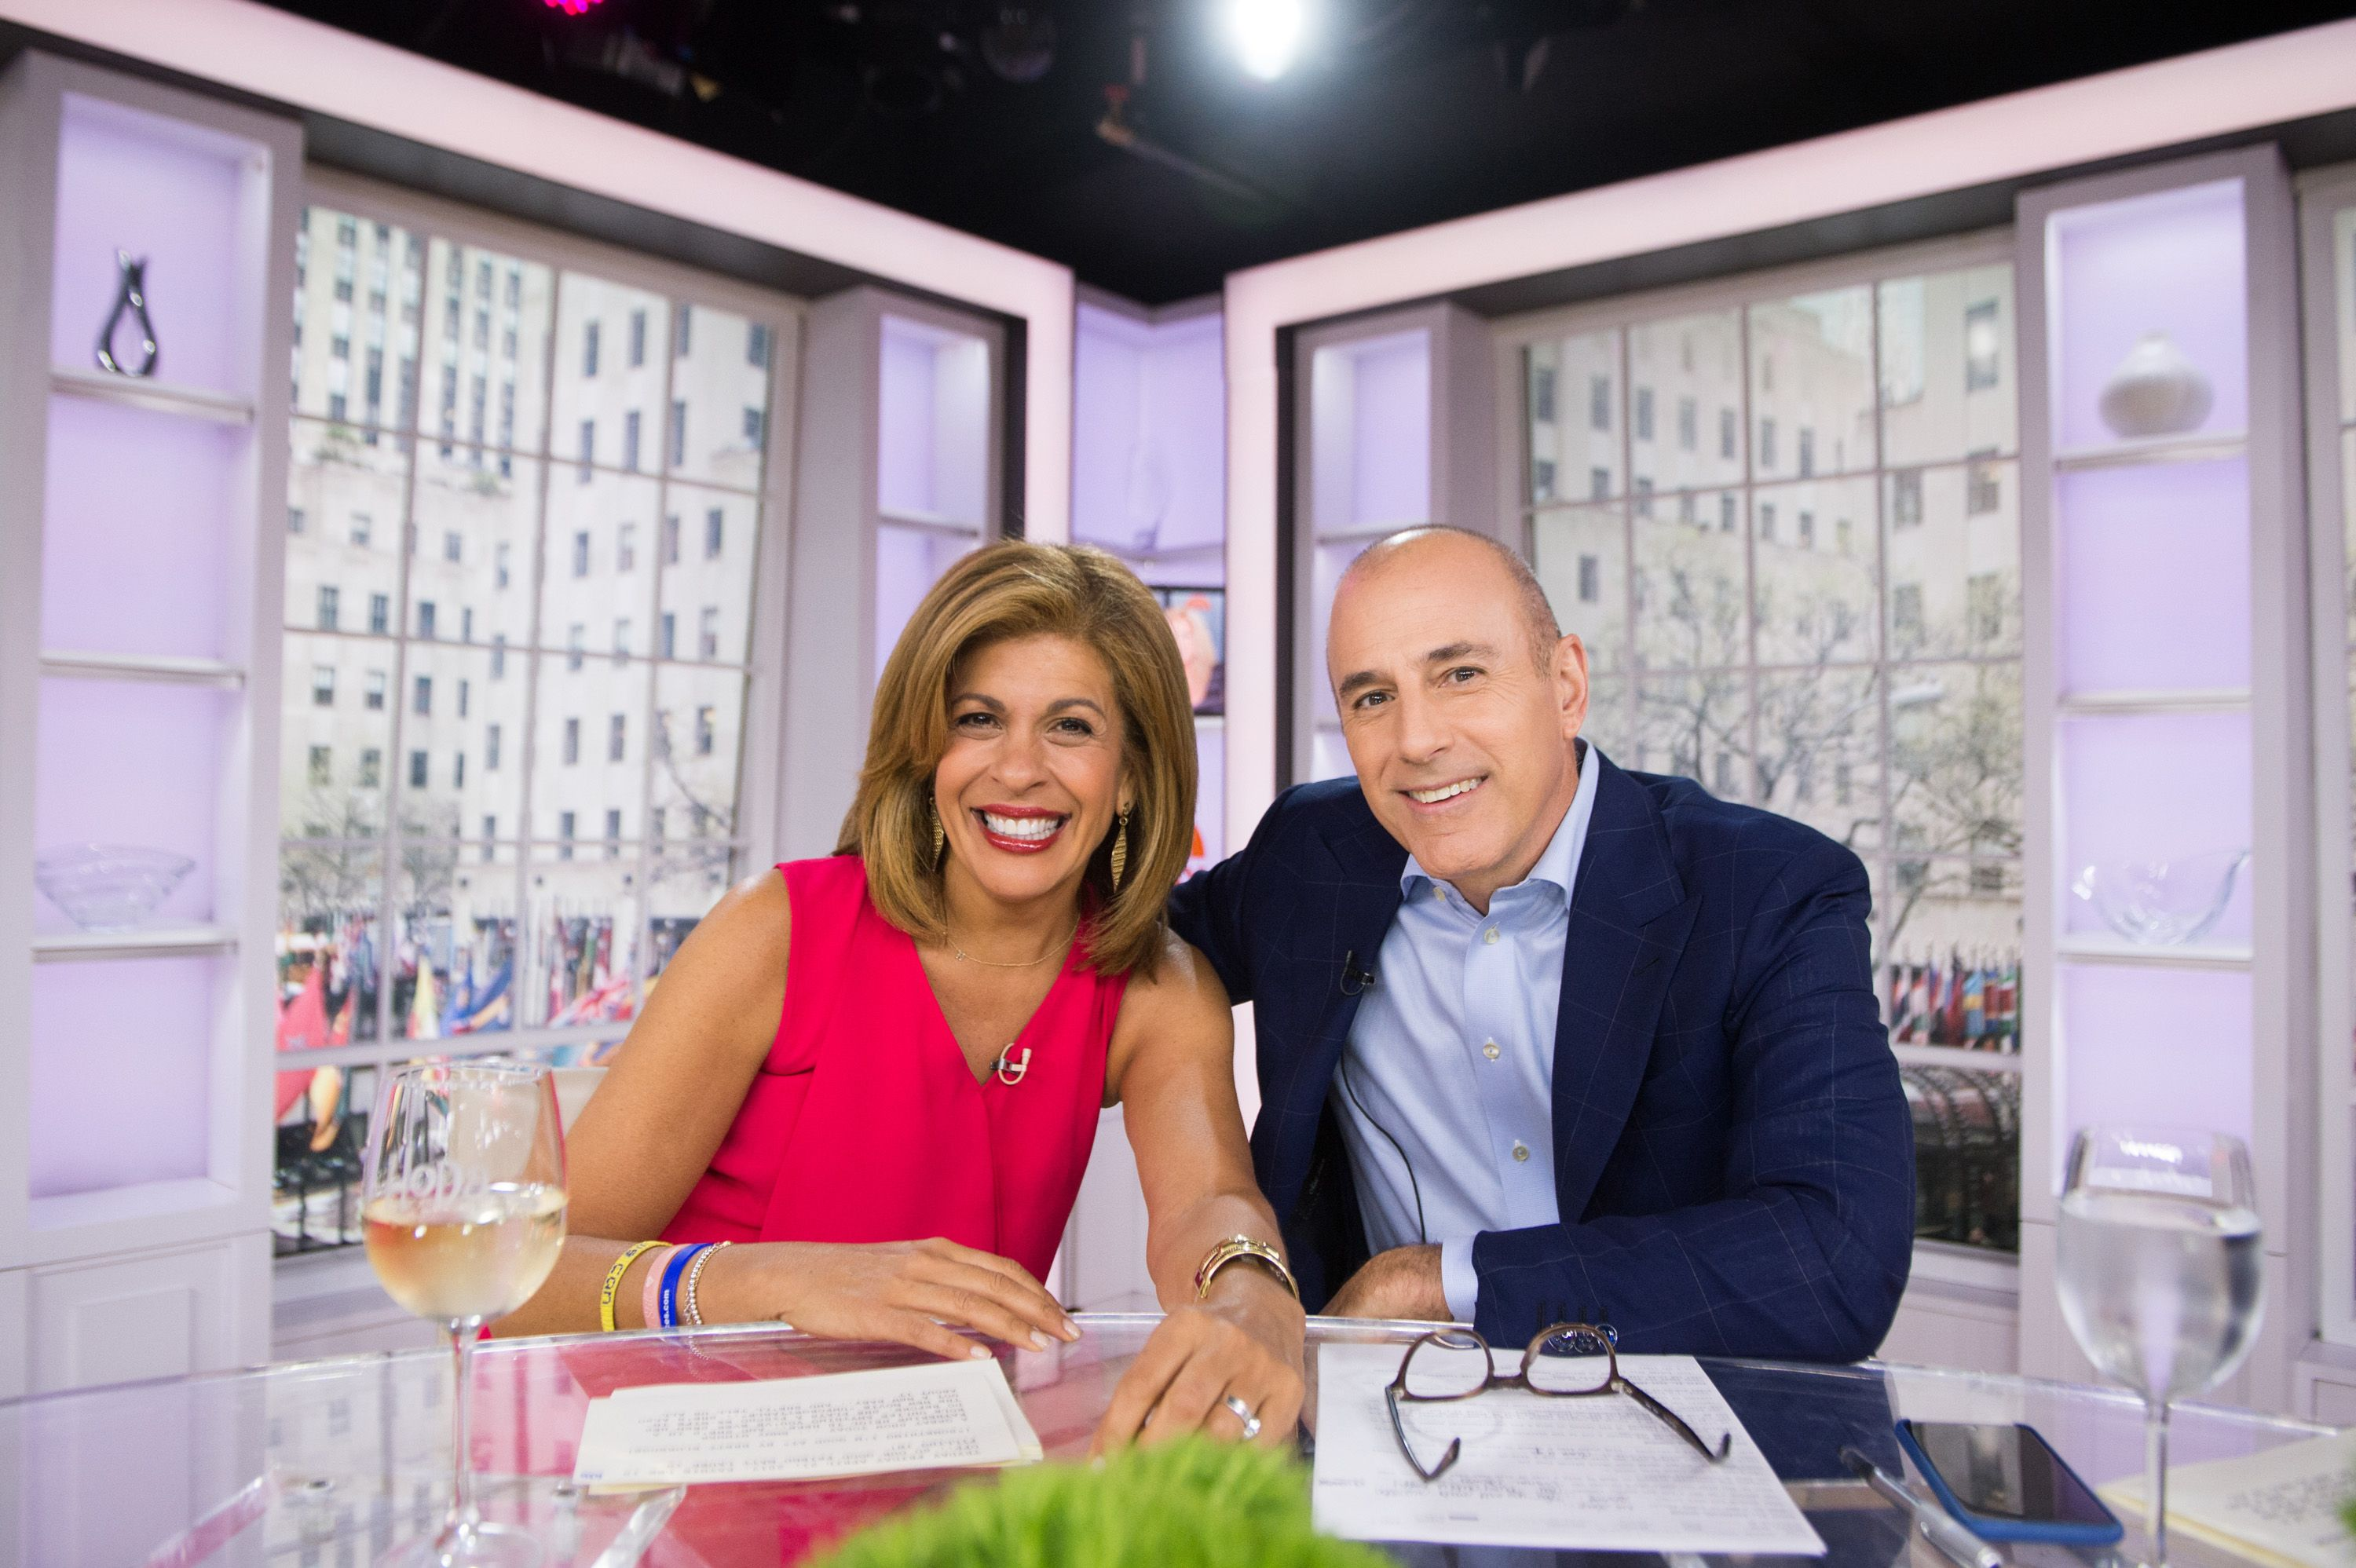 Hoda Kotb And Savannah Guthrie Making Less Money Than Matt Lauer At Today Show